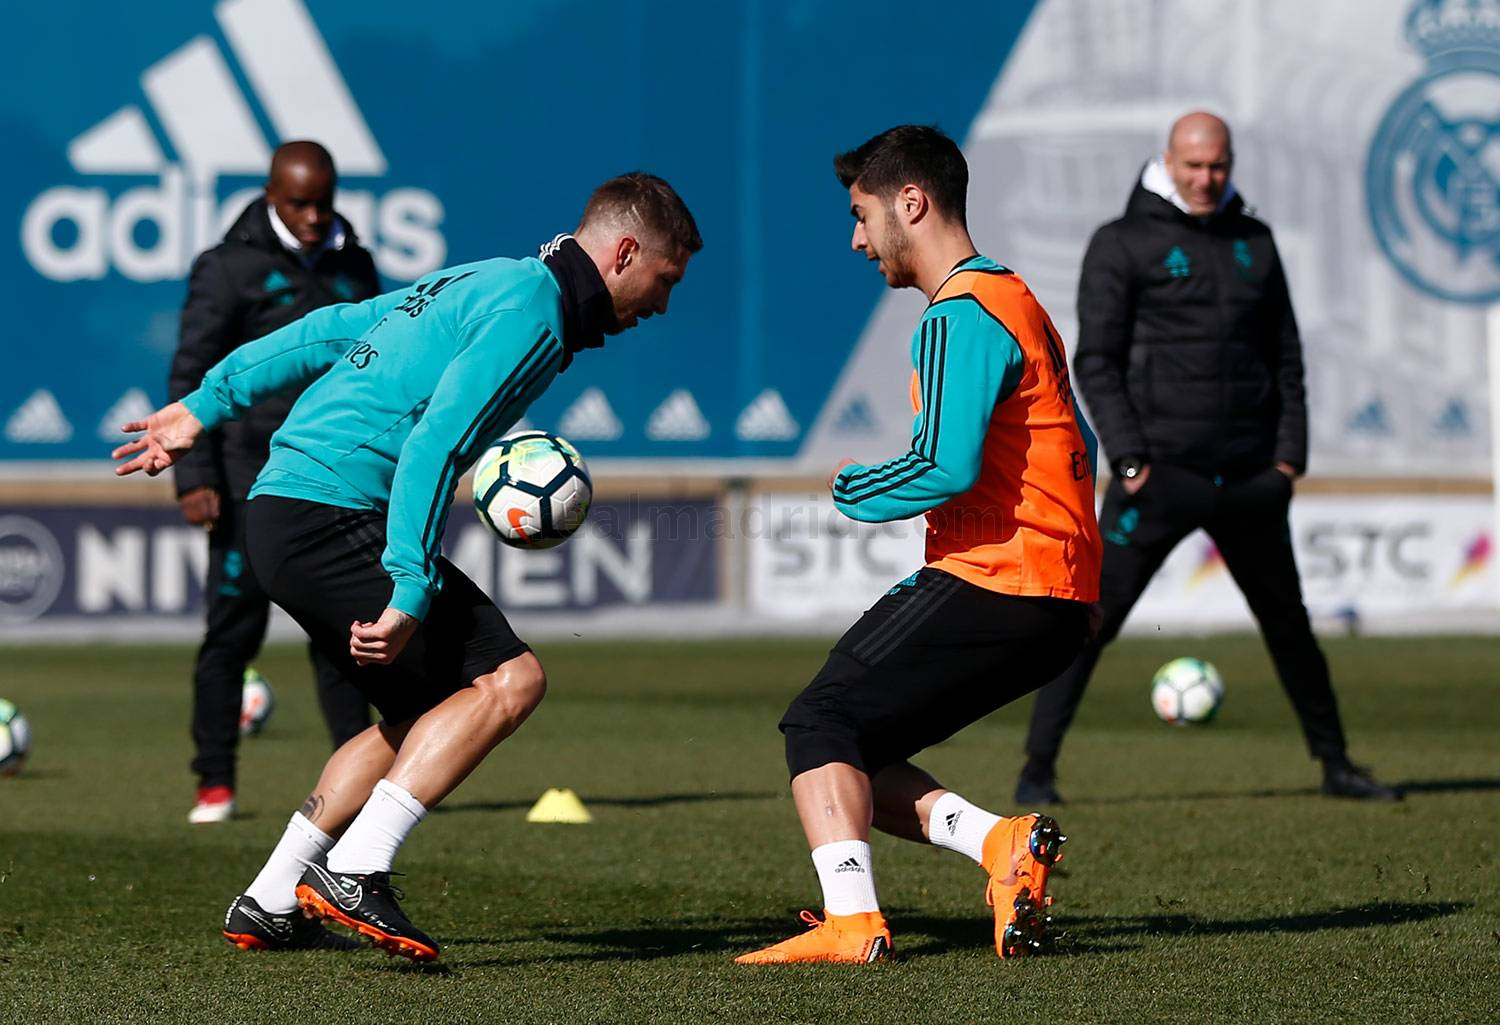 Real Madrid - Entrenamiento del Real Madrid - 25-02-2018